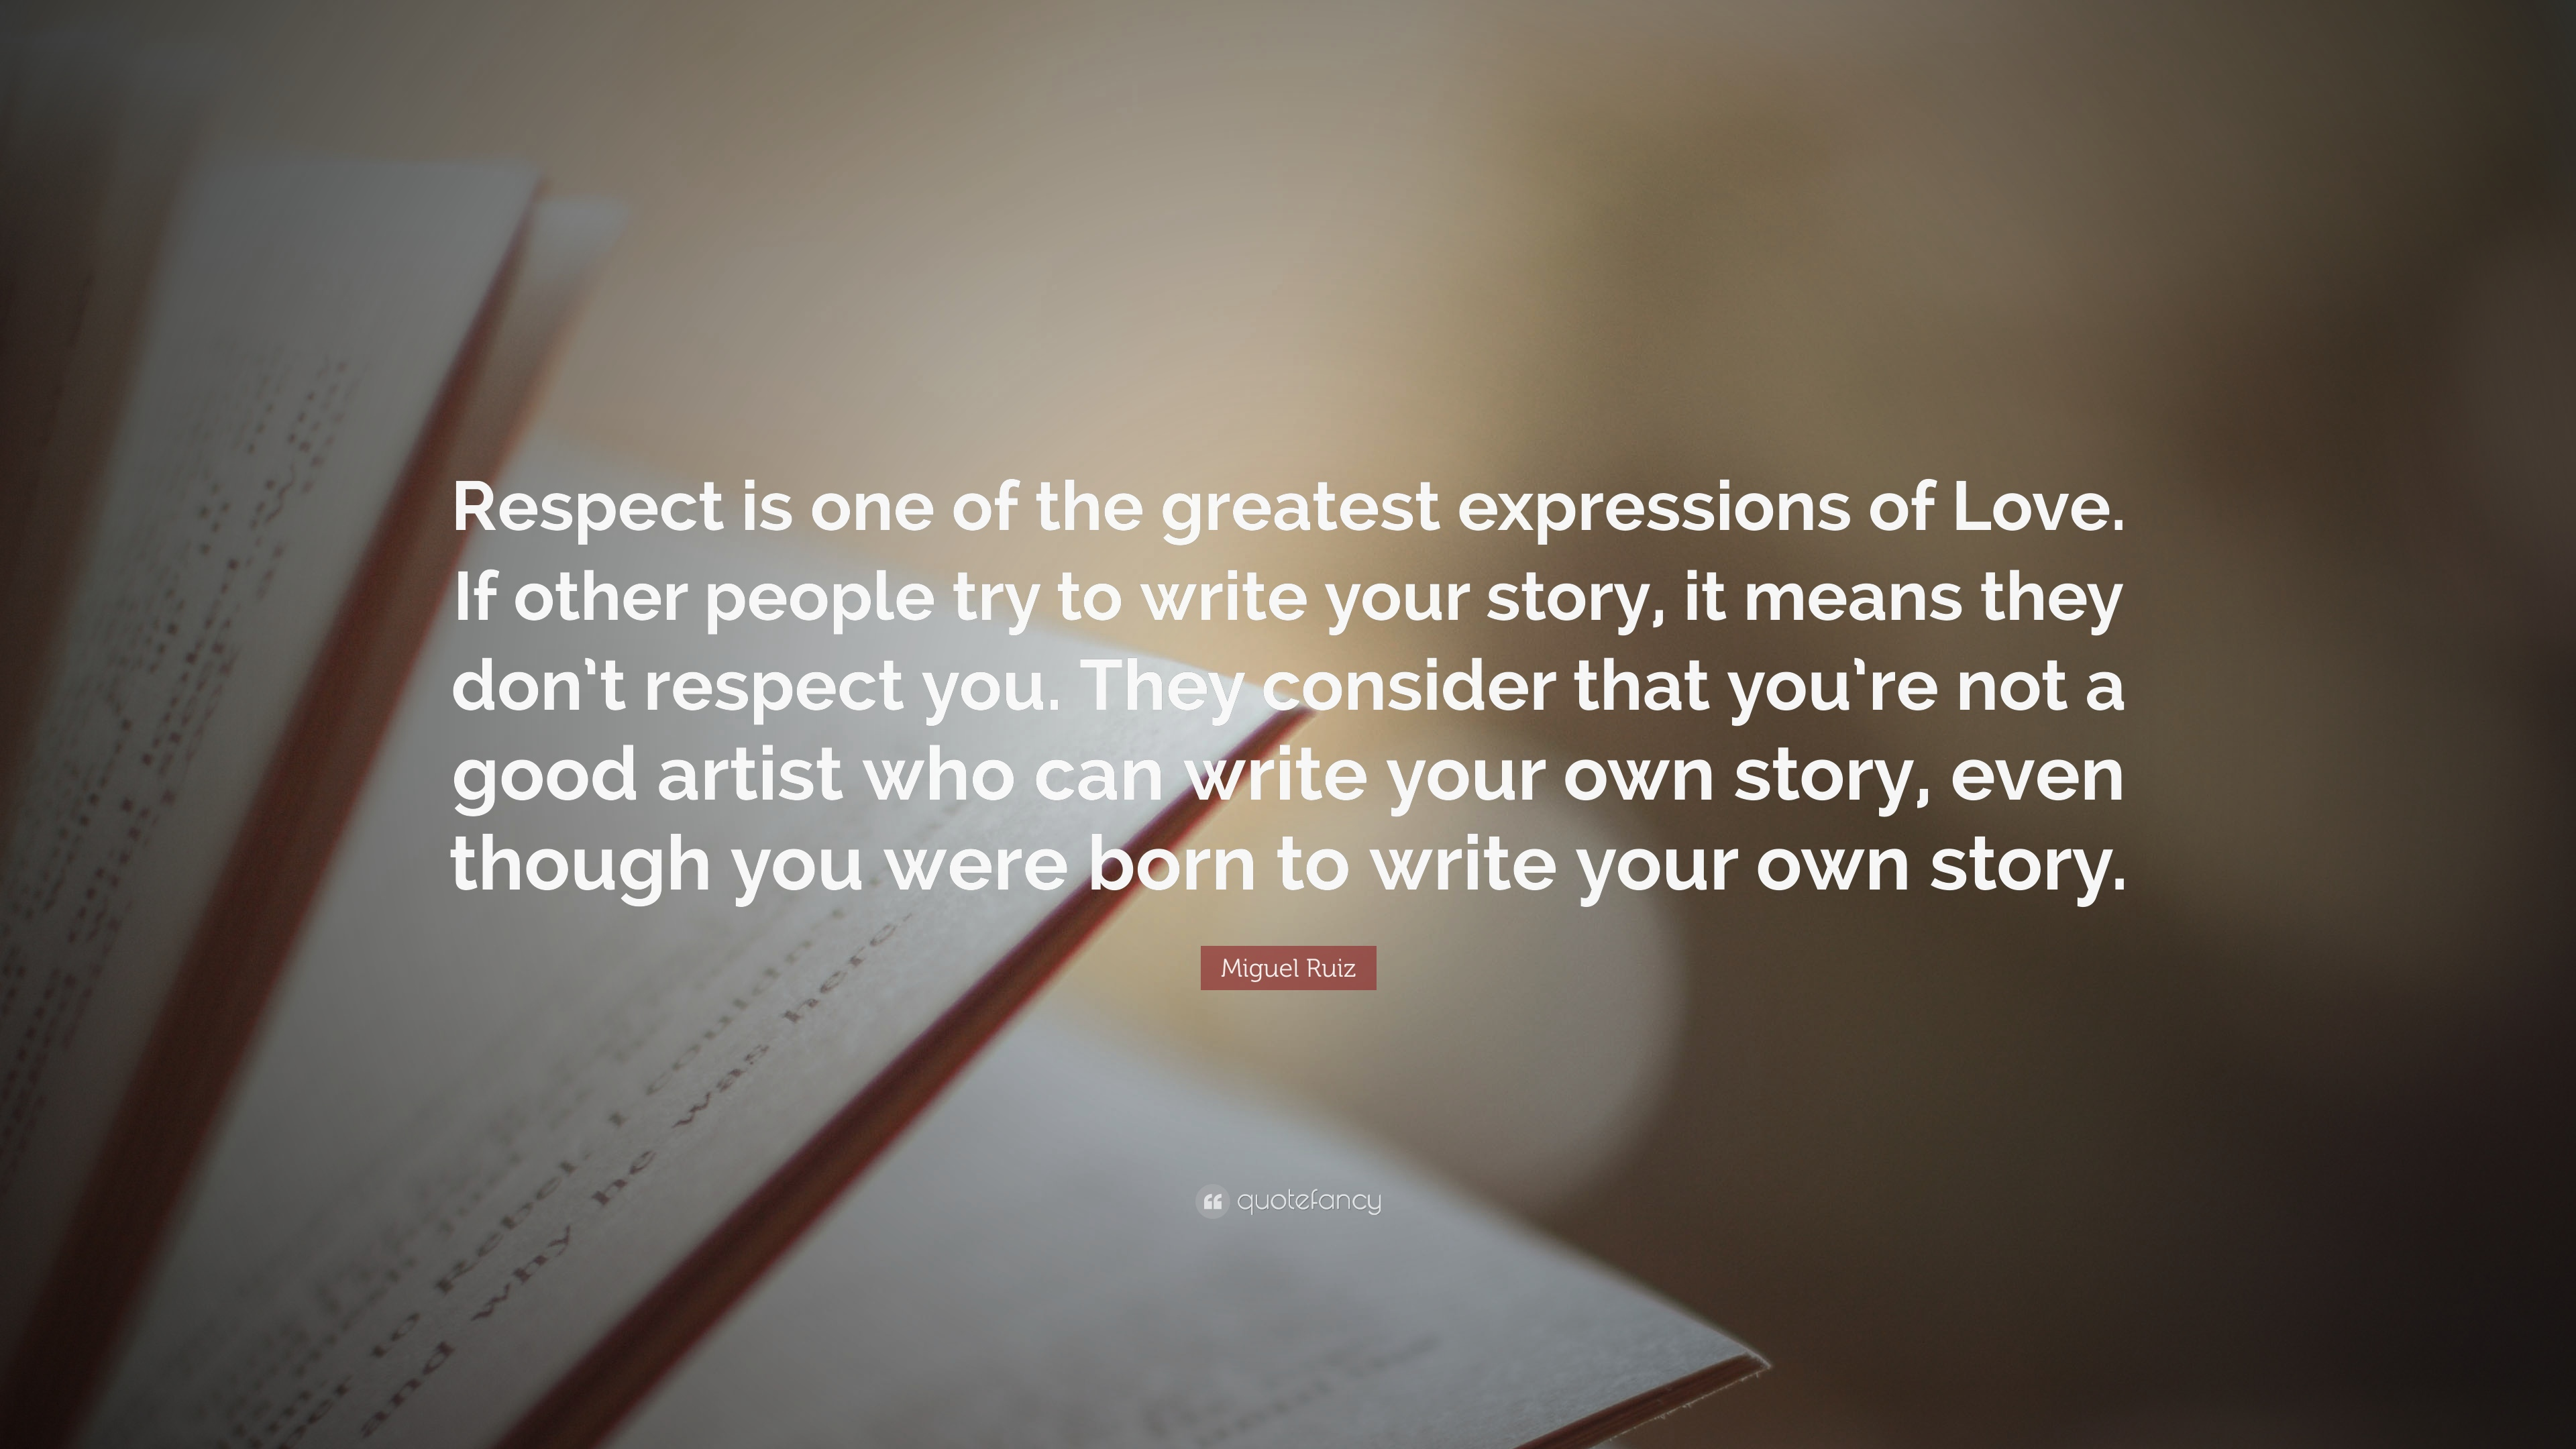 paper on respect (song for kids about showing respect) - duration: 2:41 writing an introductory paragraph for an essay or research paper - duration: 8:13.